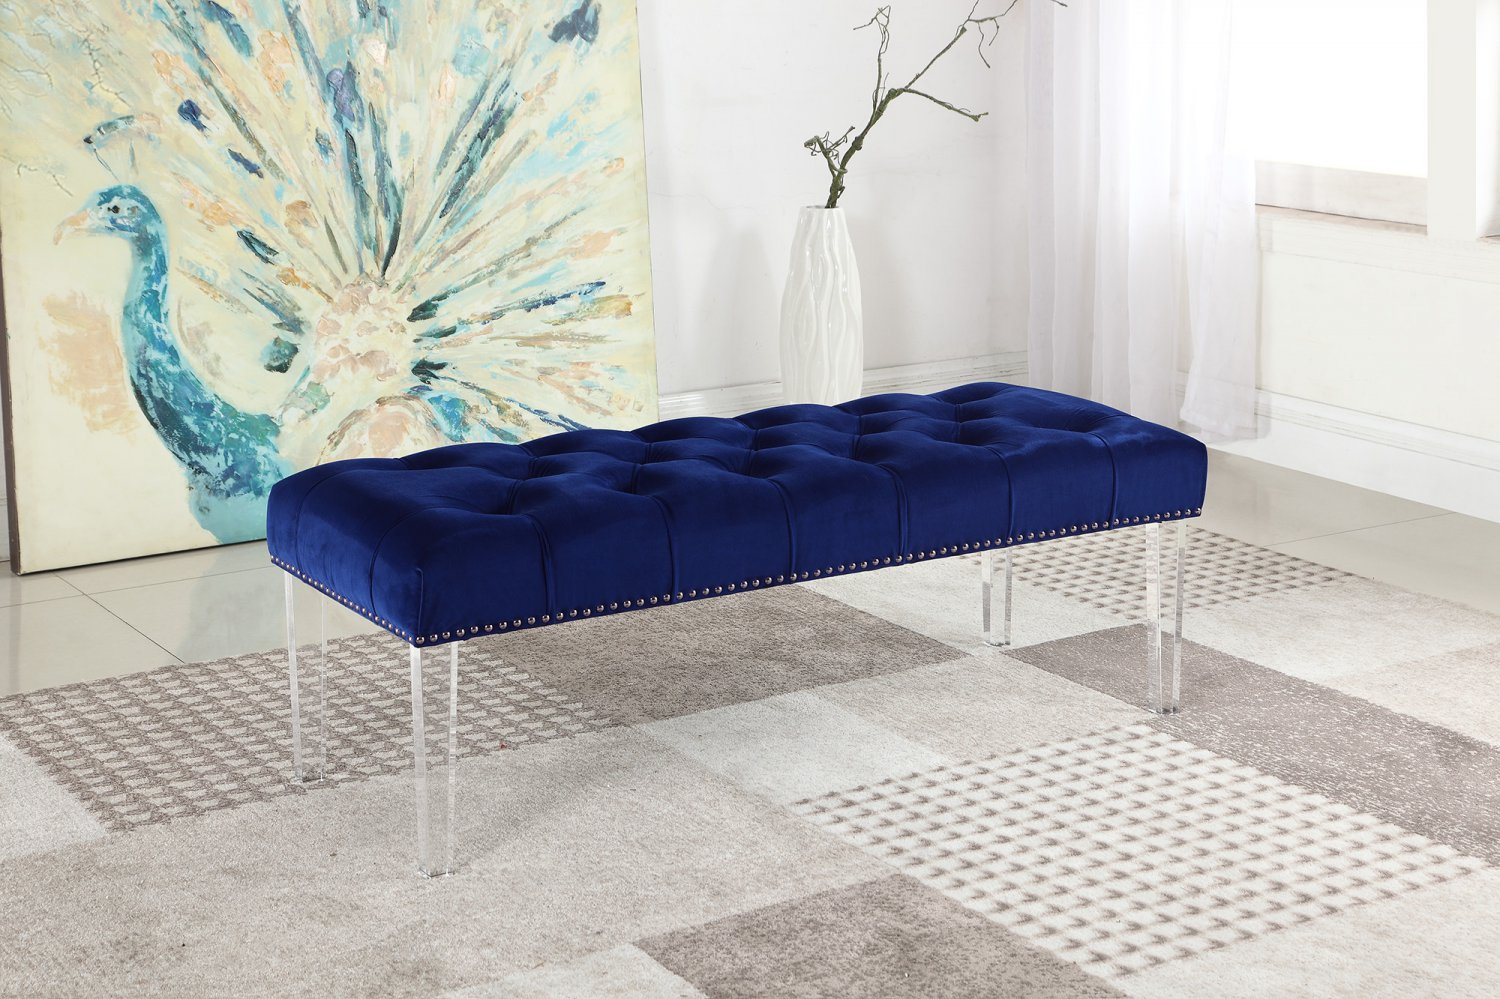 YF07, Suede Upholstered Tufted Bench with Acrylic Legs (Navy Blue)